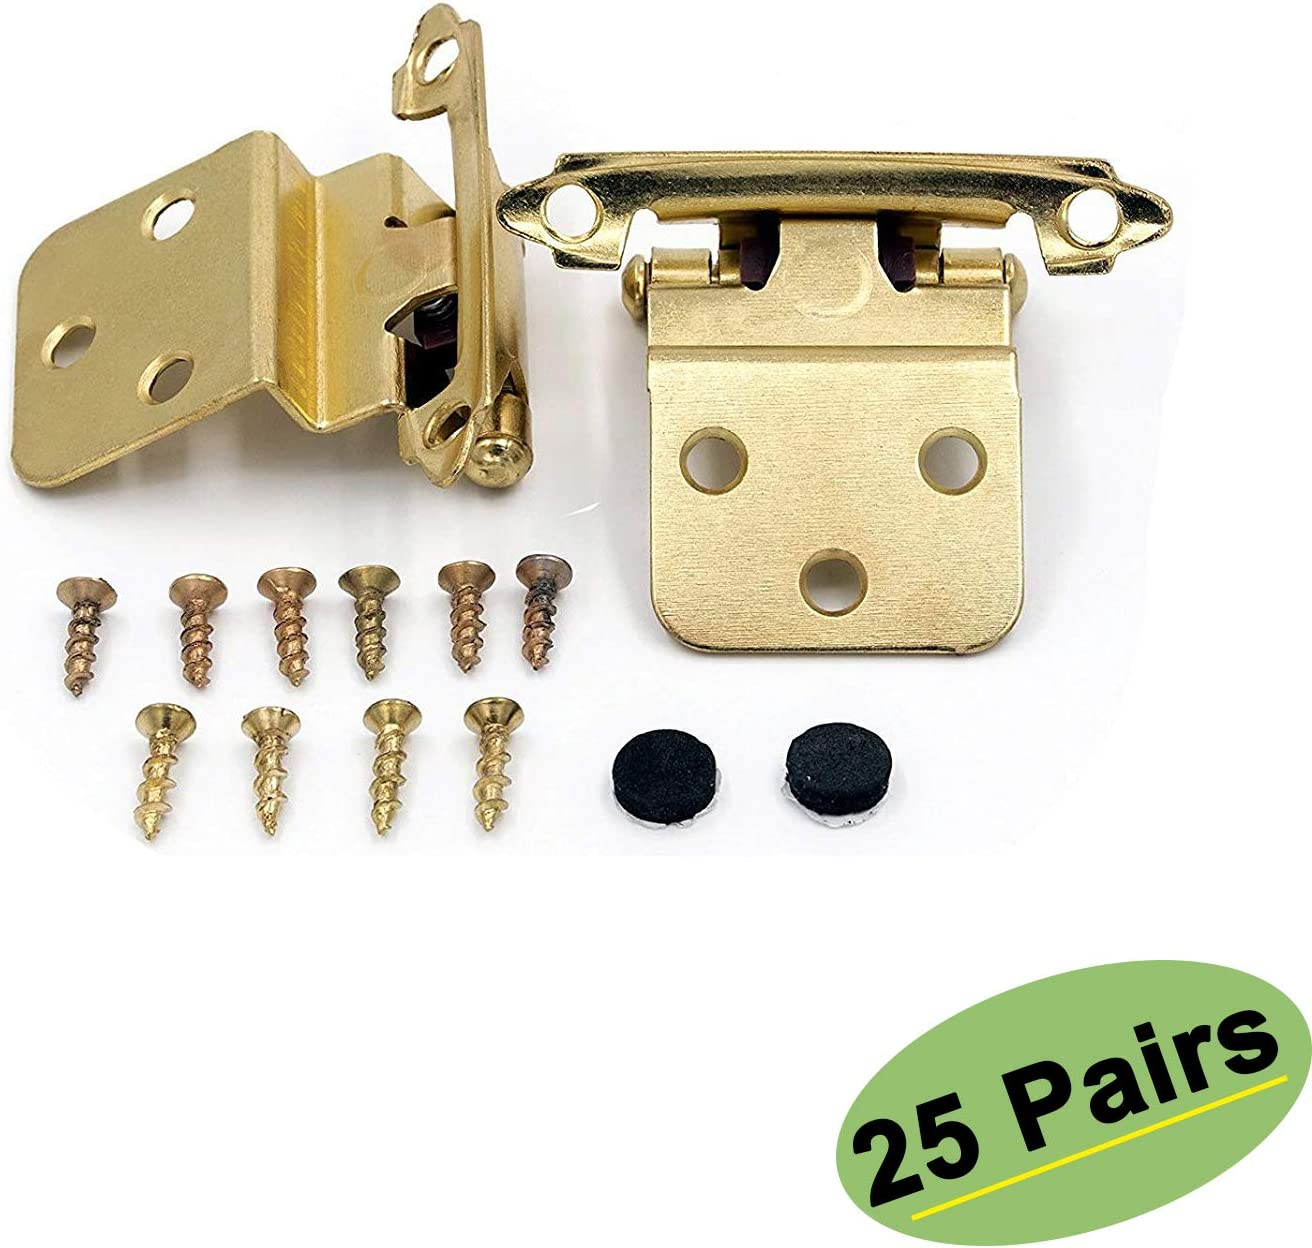 Inset Cabinet Hinges Self-Closing 25 Pairs(50Pack) - homdiy SCH38BB 3/8inch Gold Hinges for Cabinets Brushed Brass Inset Hinges Furniture Harware